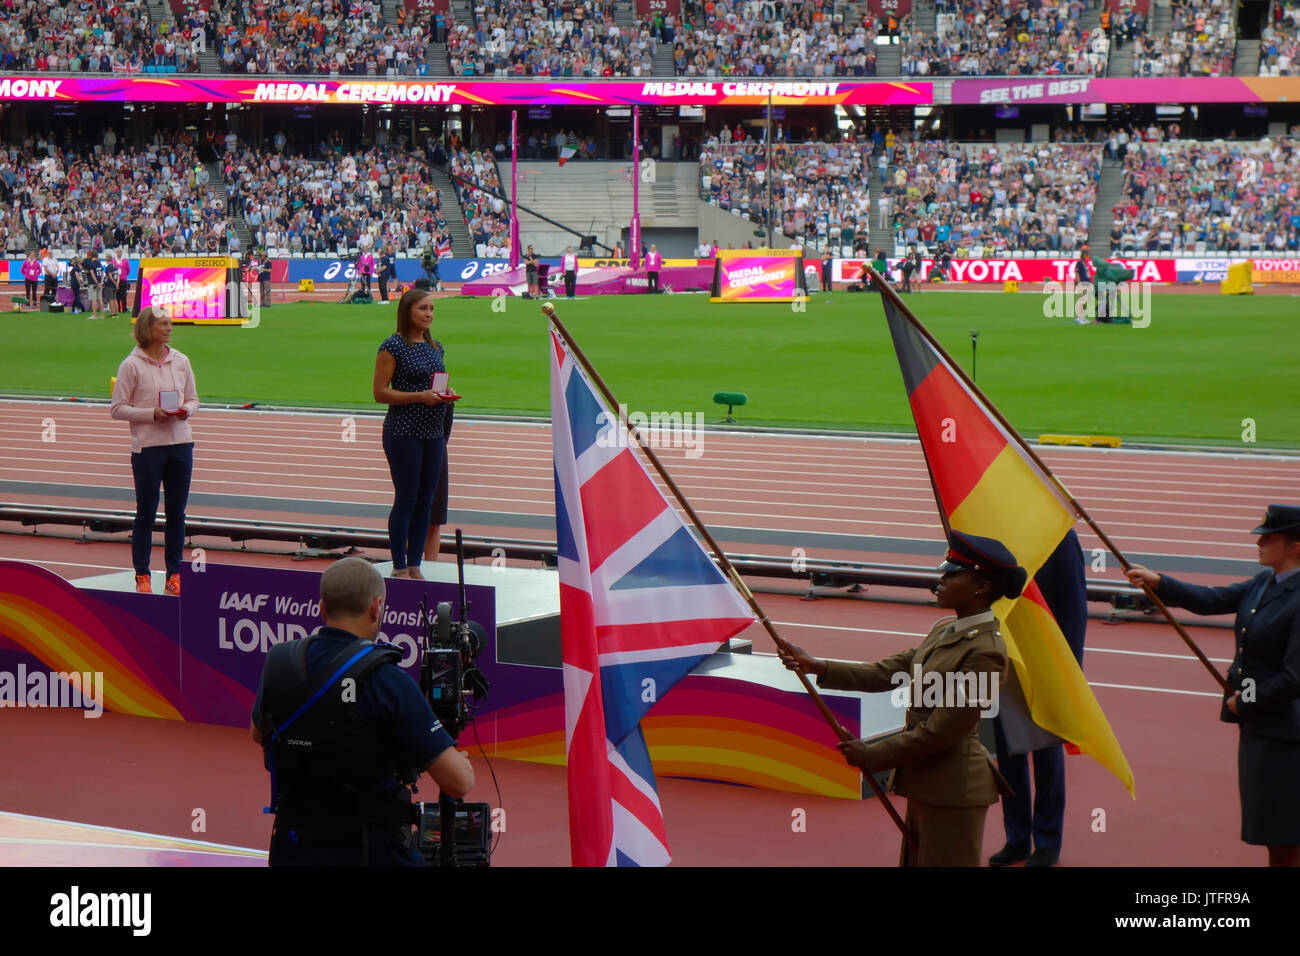 August 6th 2017, London Stadium, East London, England; IAAF World Championships, Jennifer Oeser of Germany and Jessica Ennis of Great Britain - Stock Image